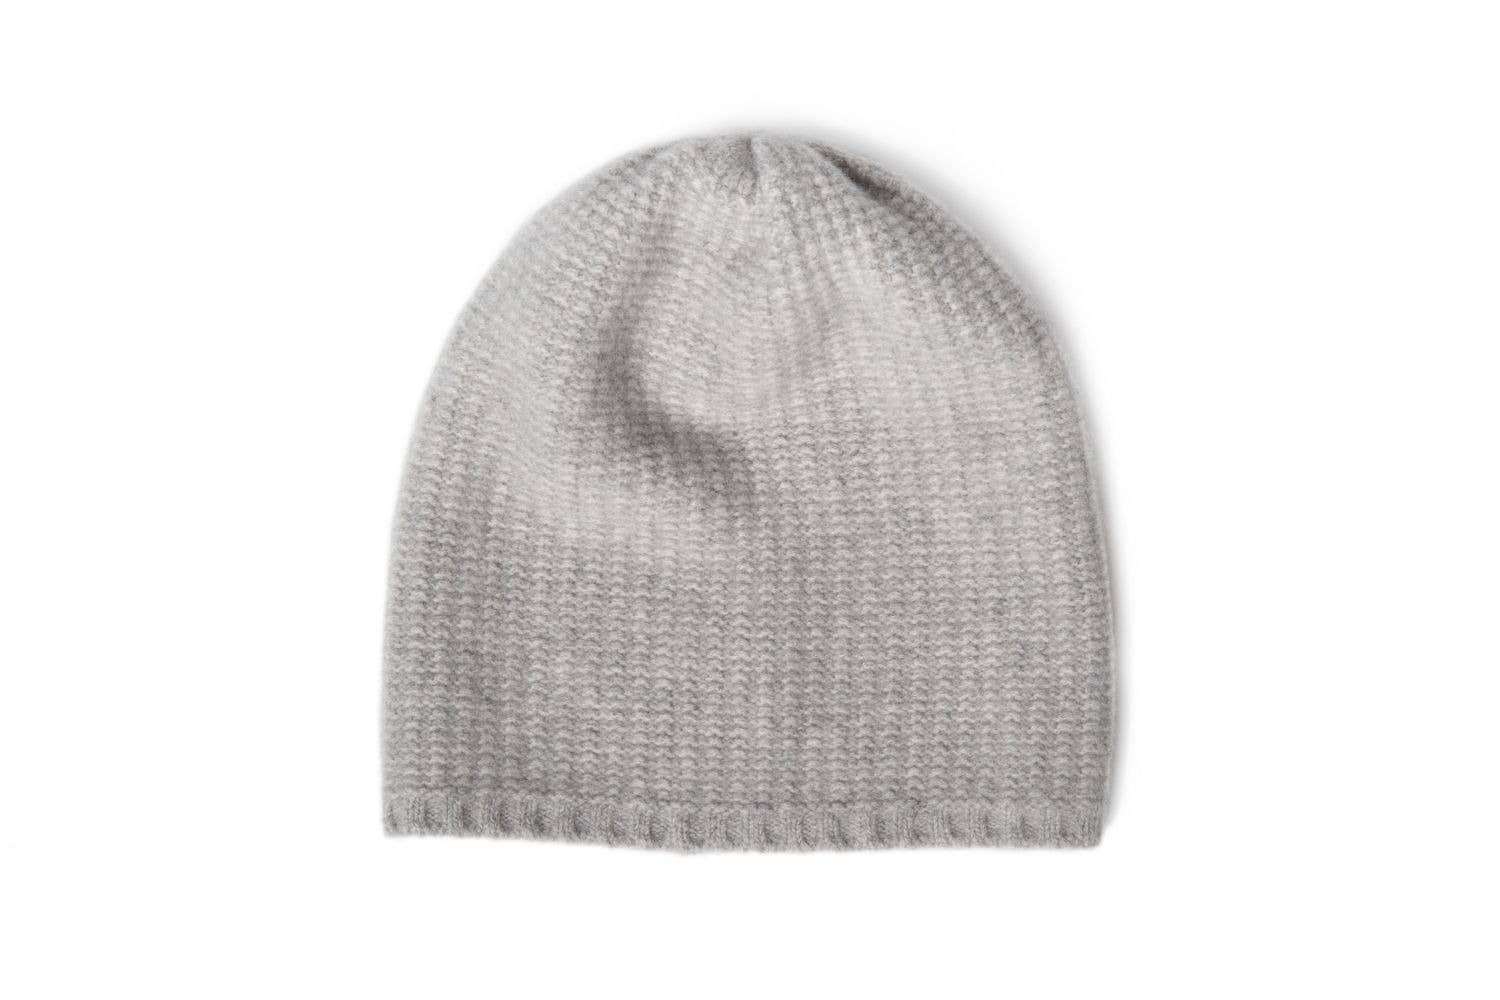 Portolano - Cashmere Slouchy Hat Light Heather - Grey